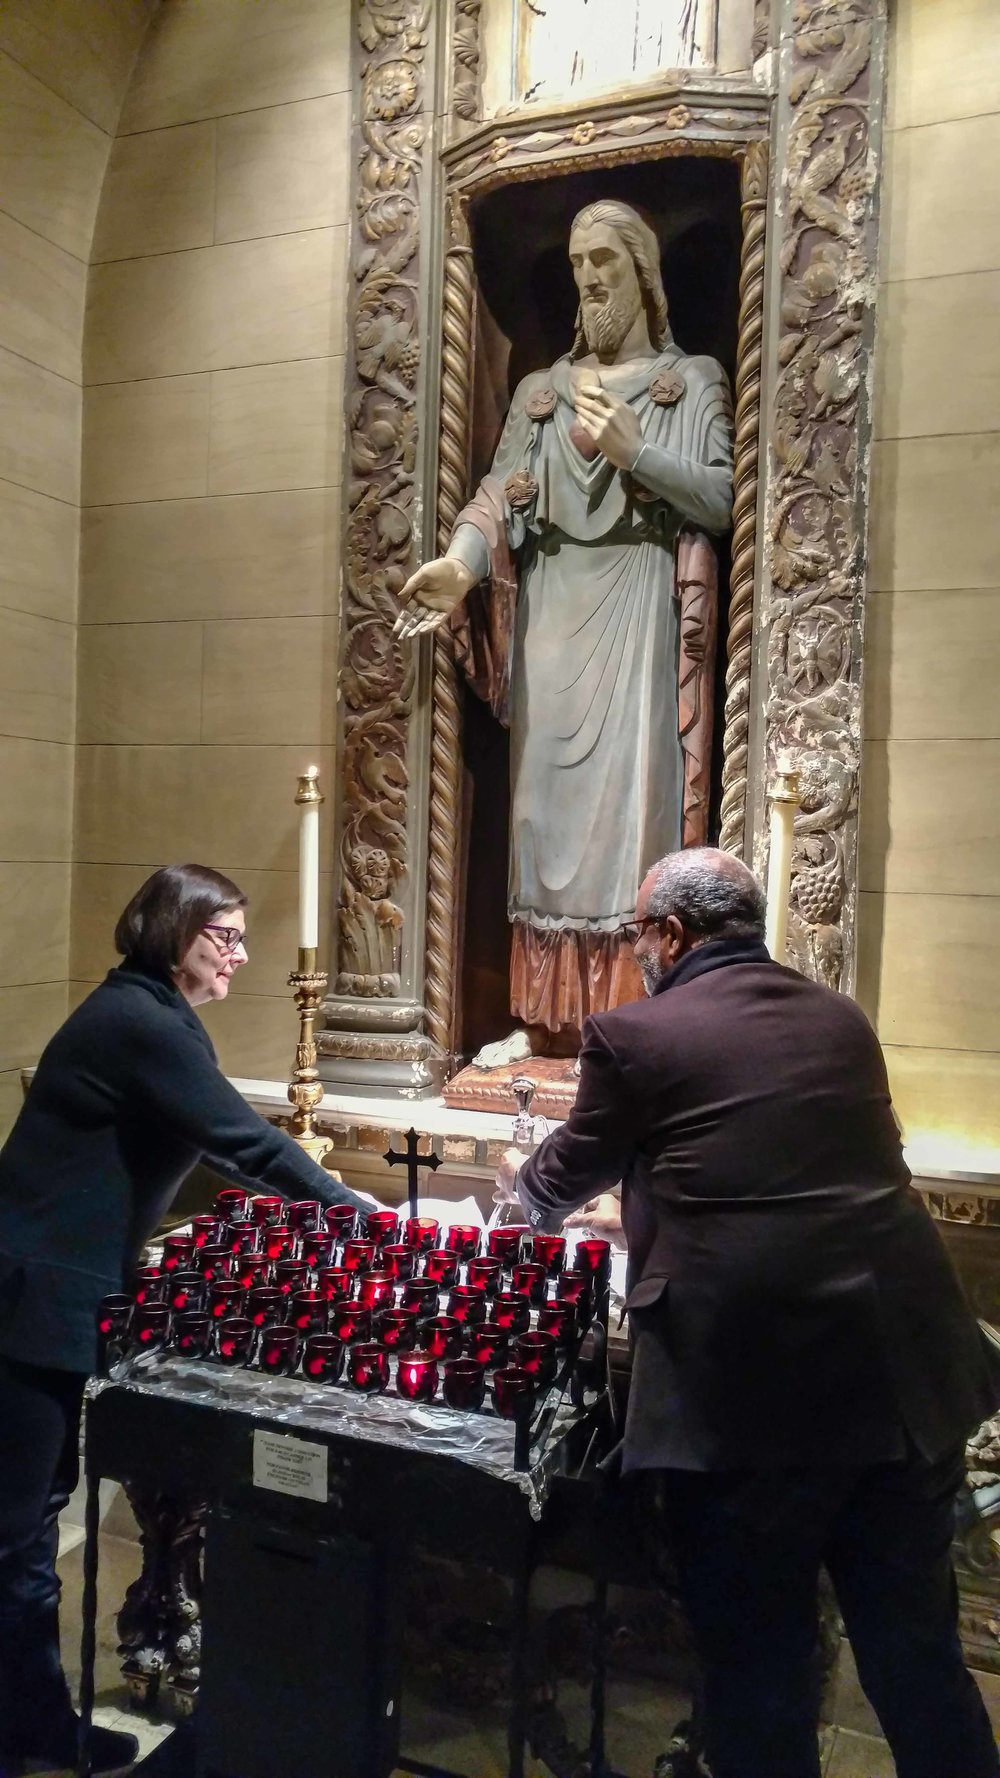 Ushers Renee Pecquex and Blair Burroughs collect the bread and wine at the Sacred Heart Shrine before the preparation of the gifts.